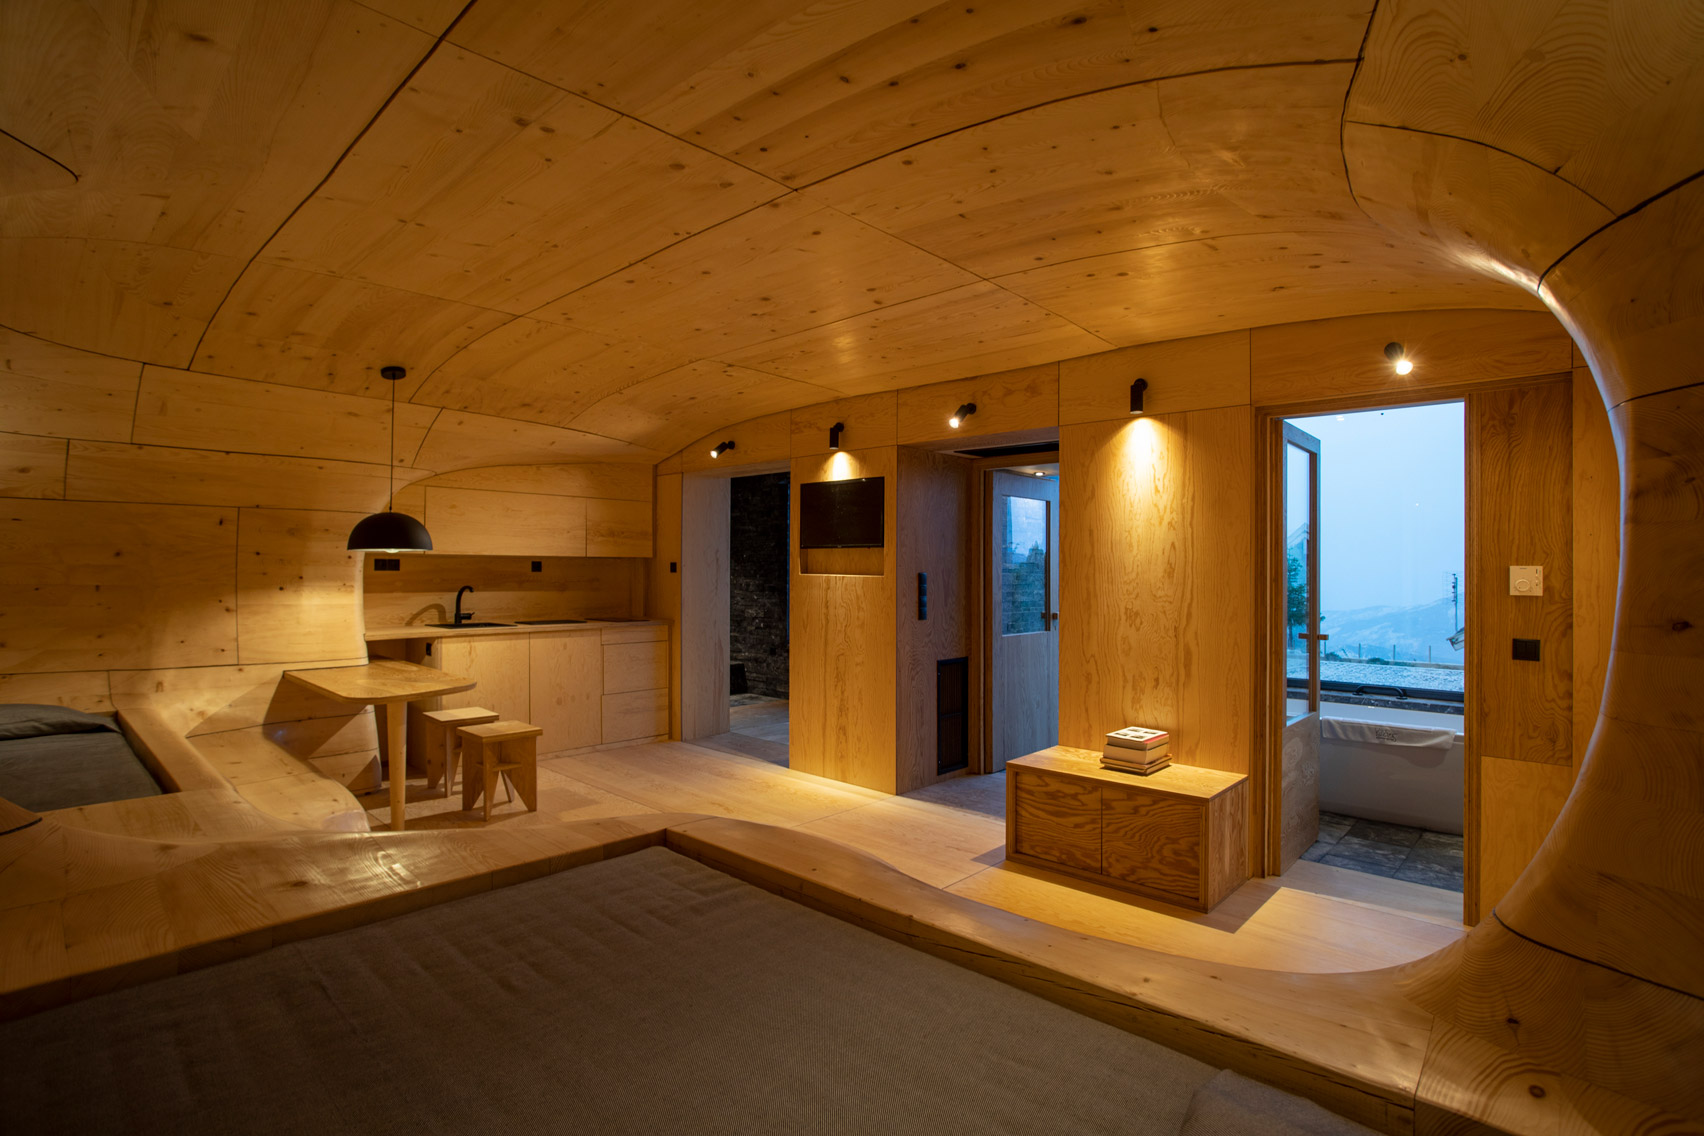 Wooden Cave hotel suite in Greece is made from over 1,000 pieces of hand-cut spruce